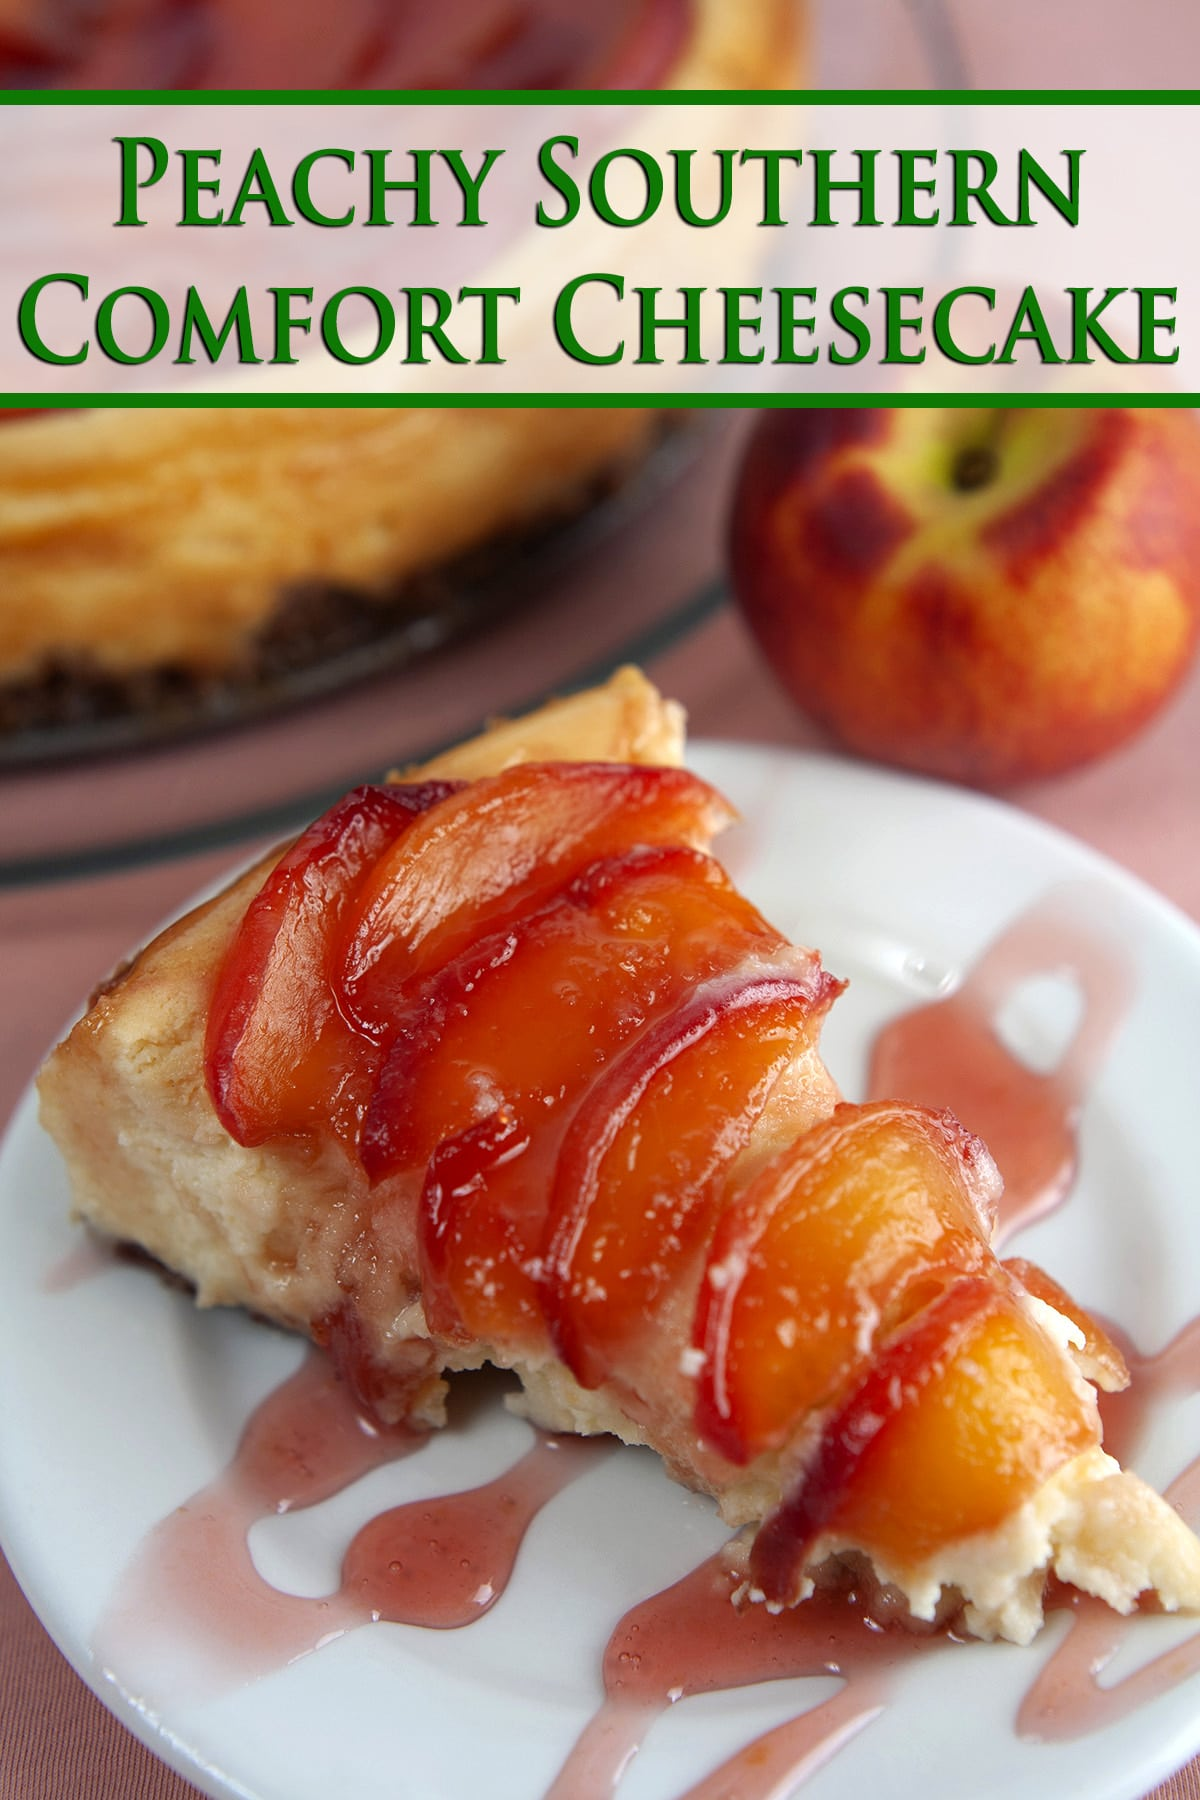 A slice of peach cheesecake with a pink drizzle, next to the whole cheesecake, and a fresh peach. Green text says Peachy Southern Comfort Cheesecake.